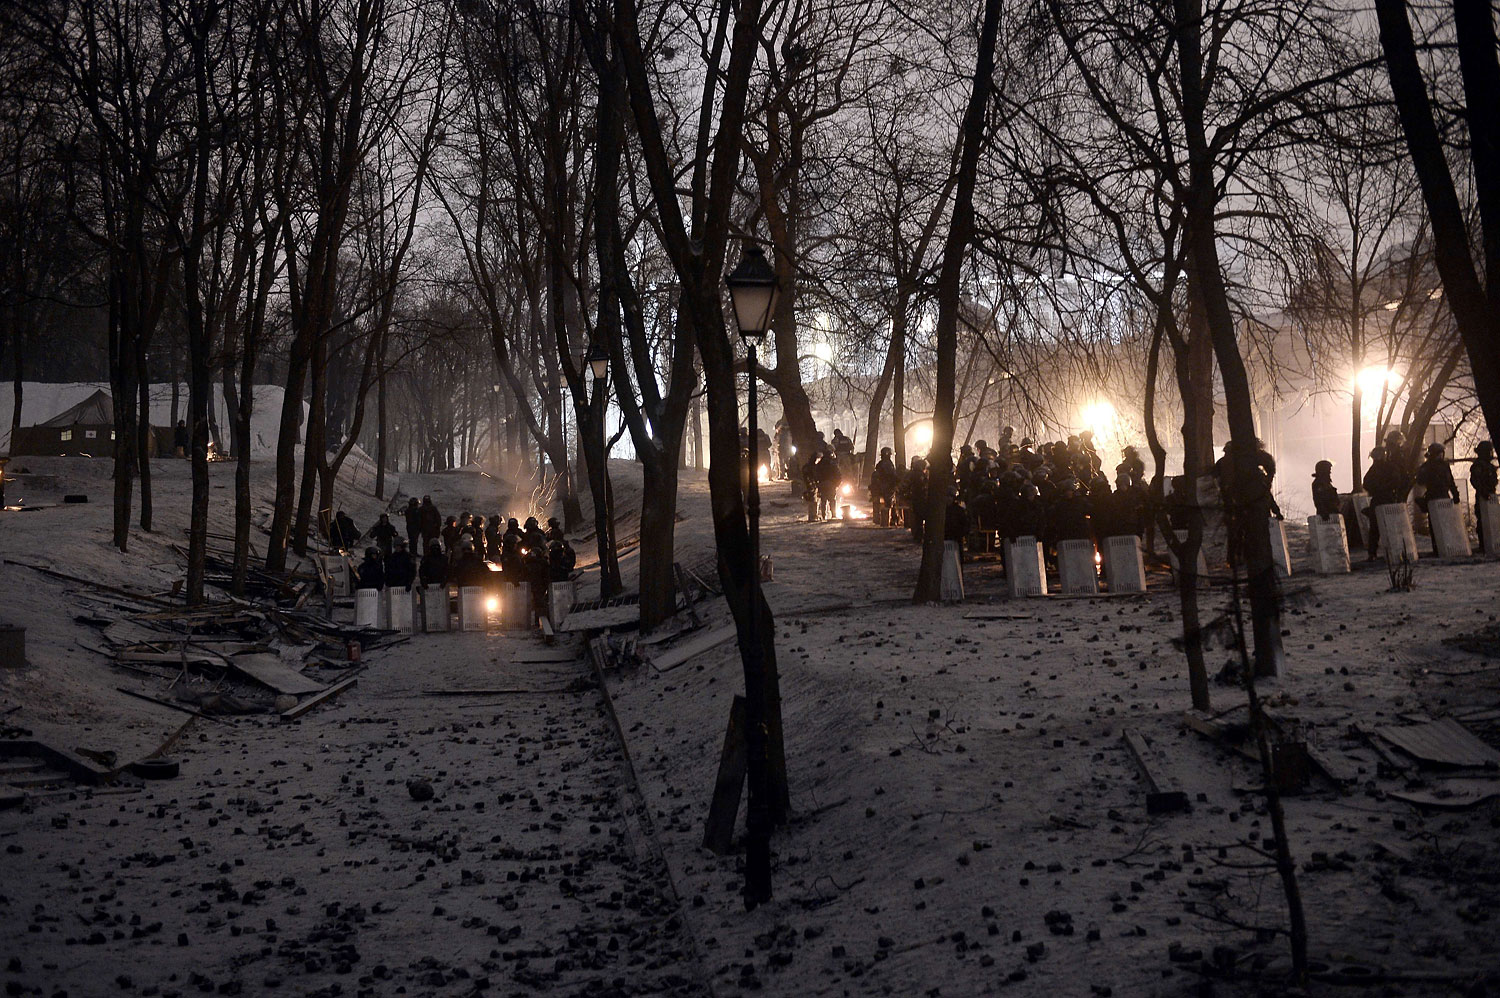 Riot police stand guard opposite anti-government protesters in a park area near a road block in Kiev on Jan. 28, 2014.